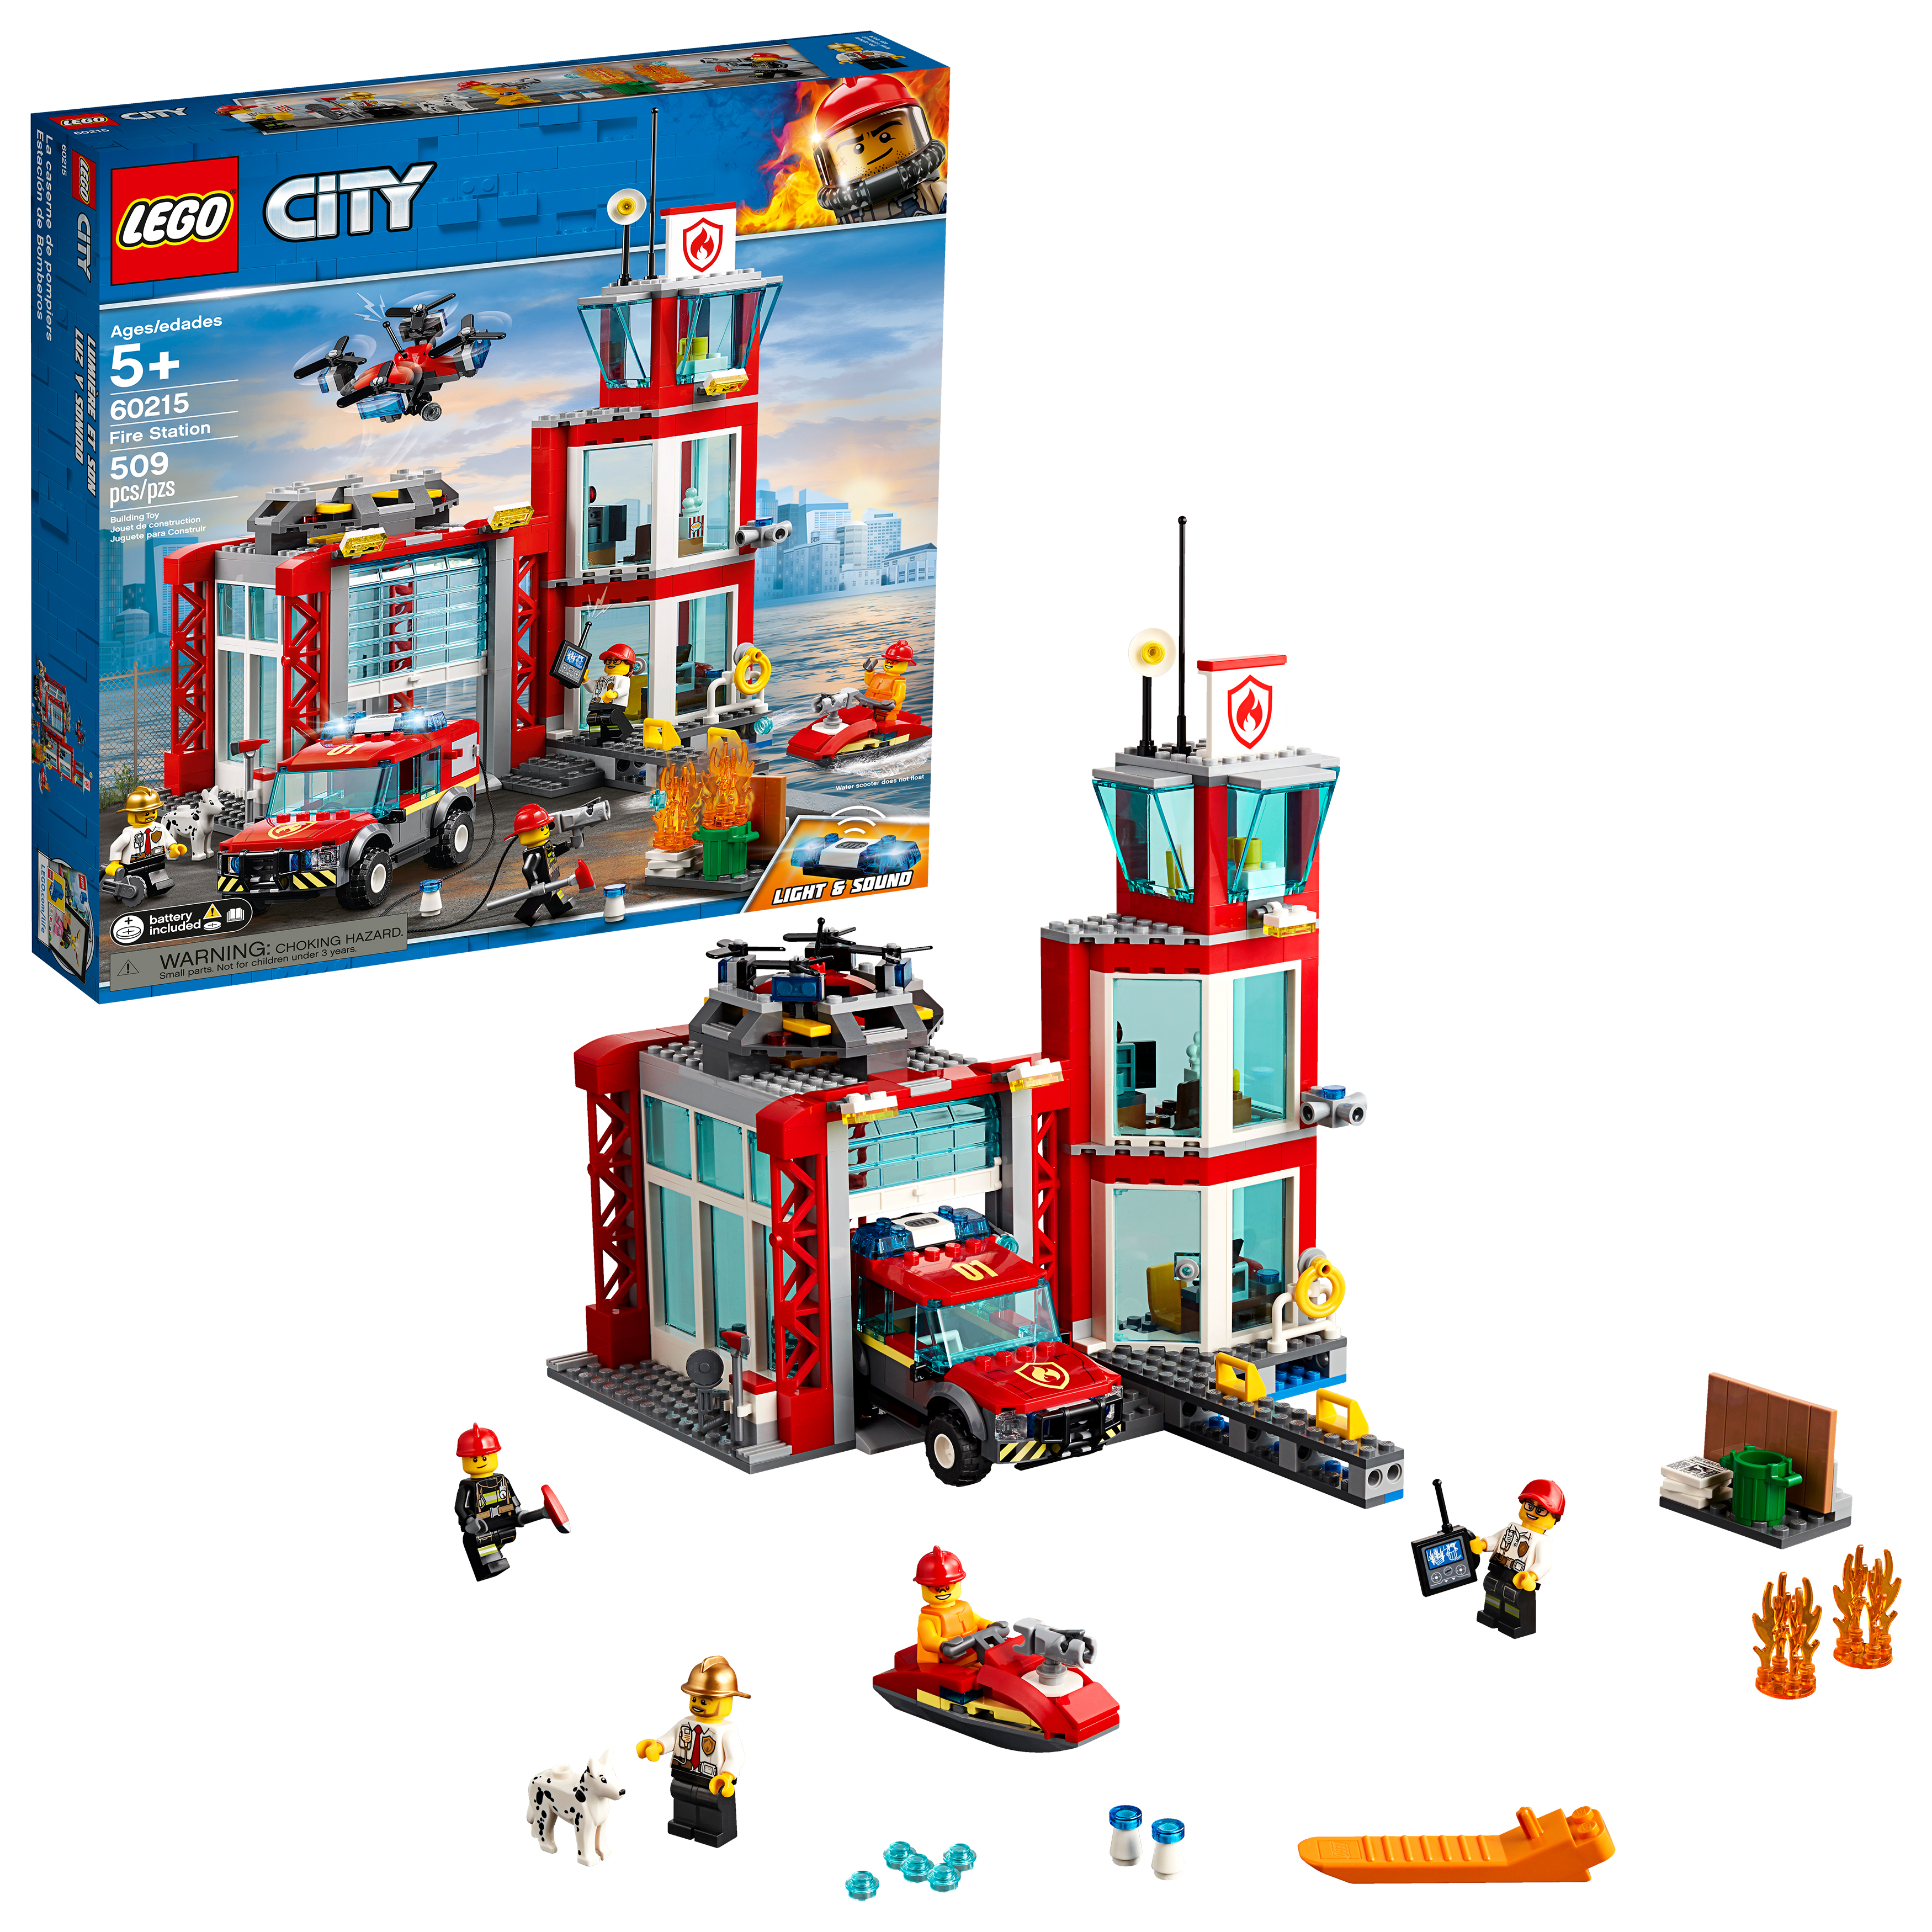 LEGO City Fire Fire Station 60215 Building Set (509 Pieces)